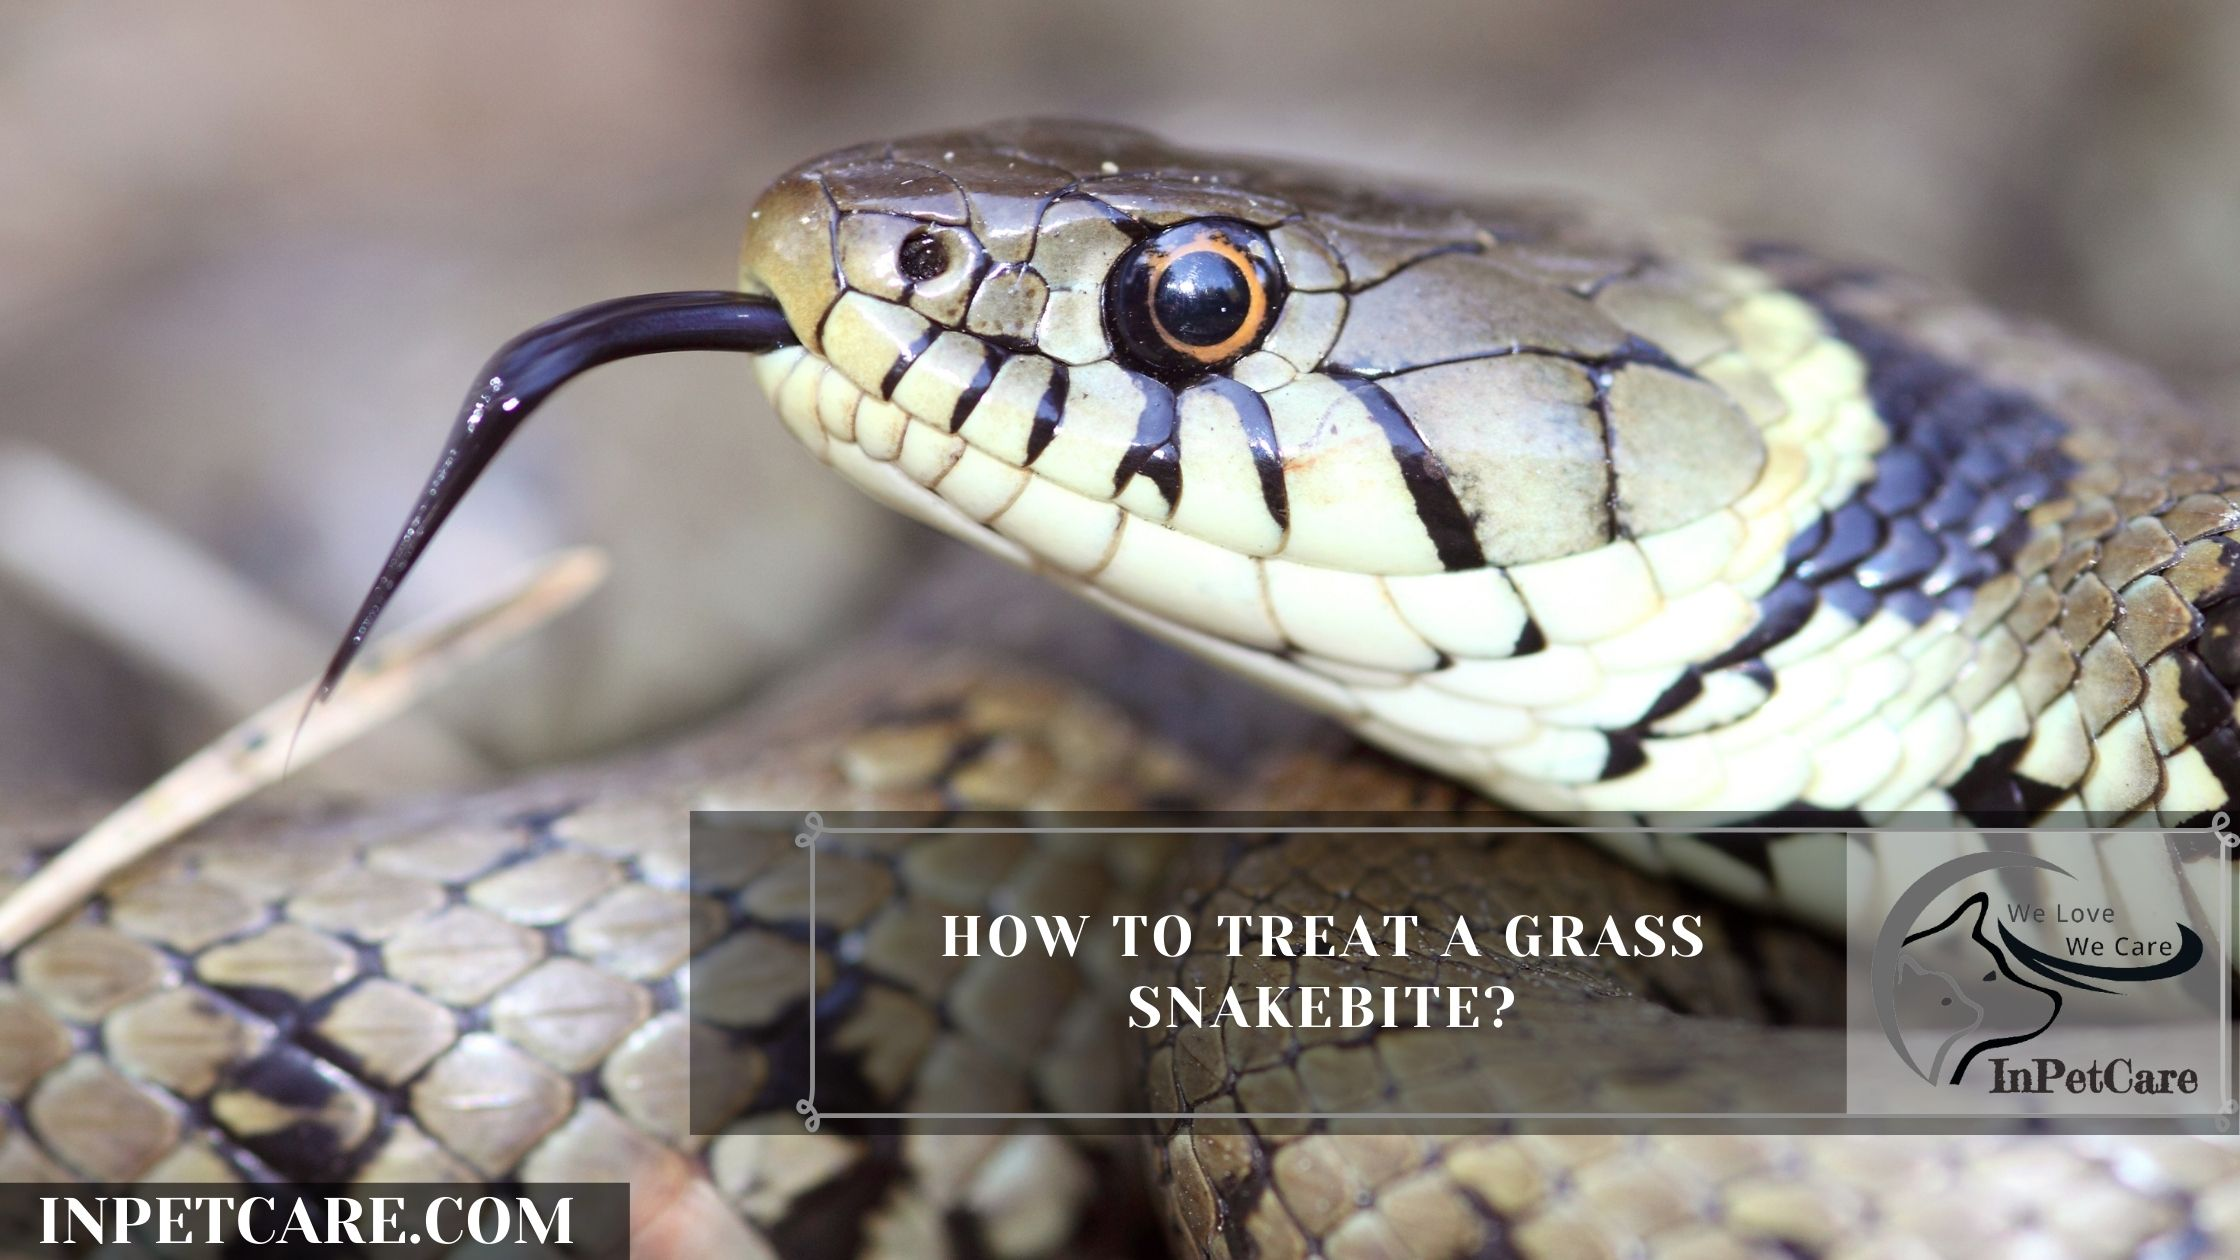 How To Treat A Grass Snakebite?